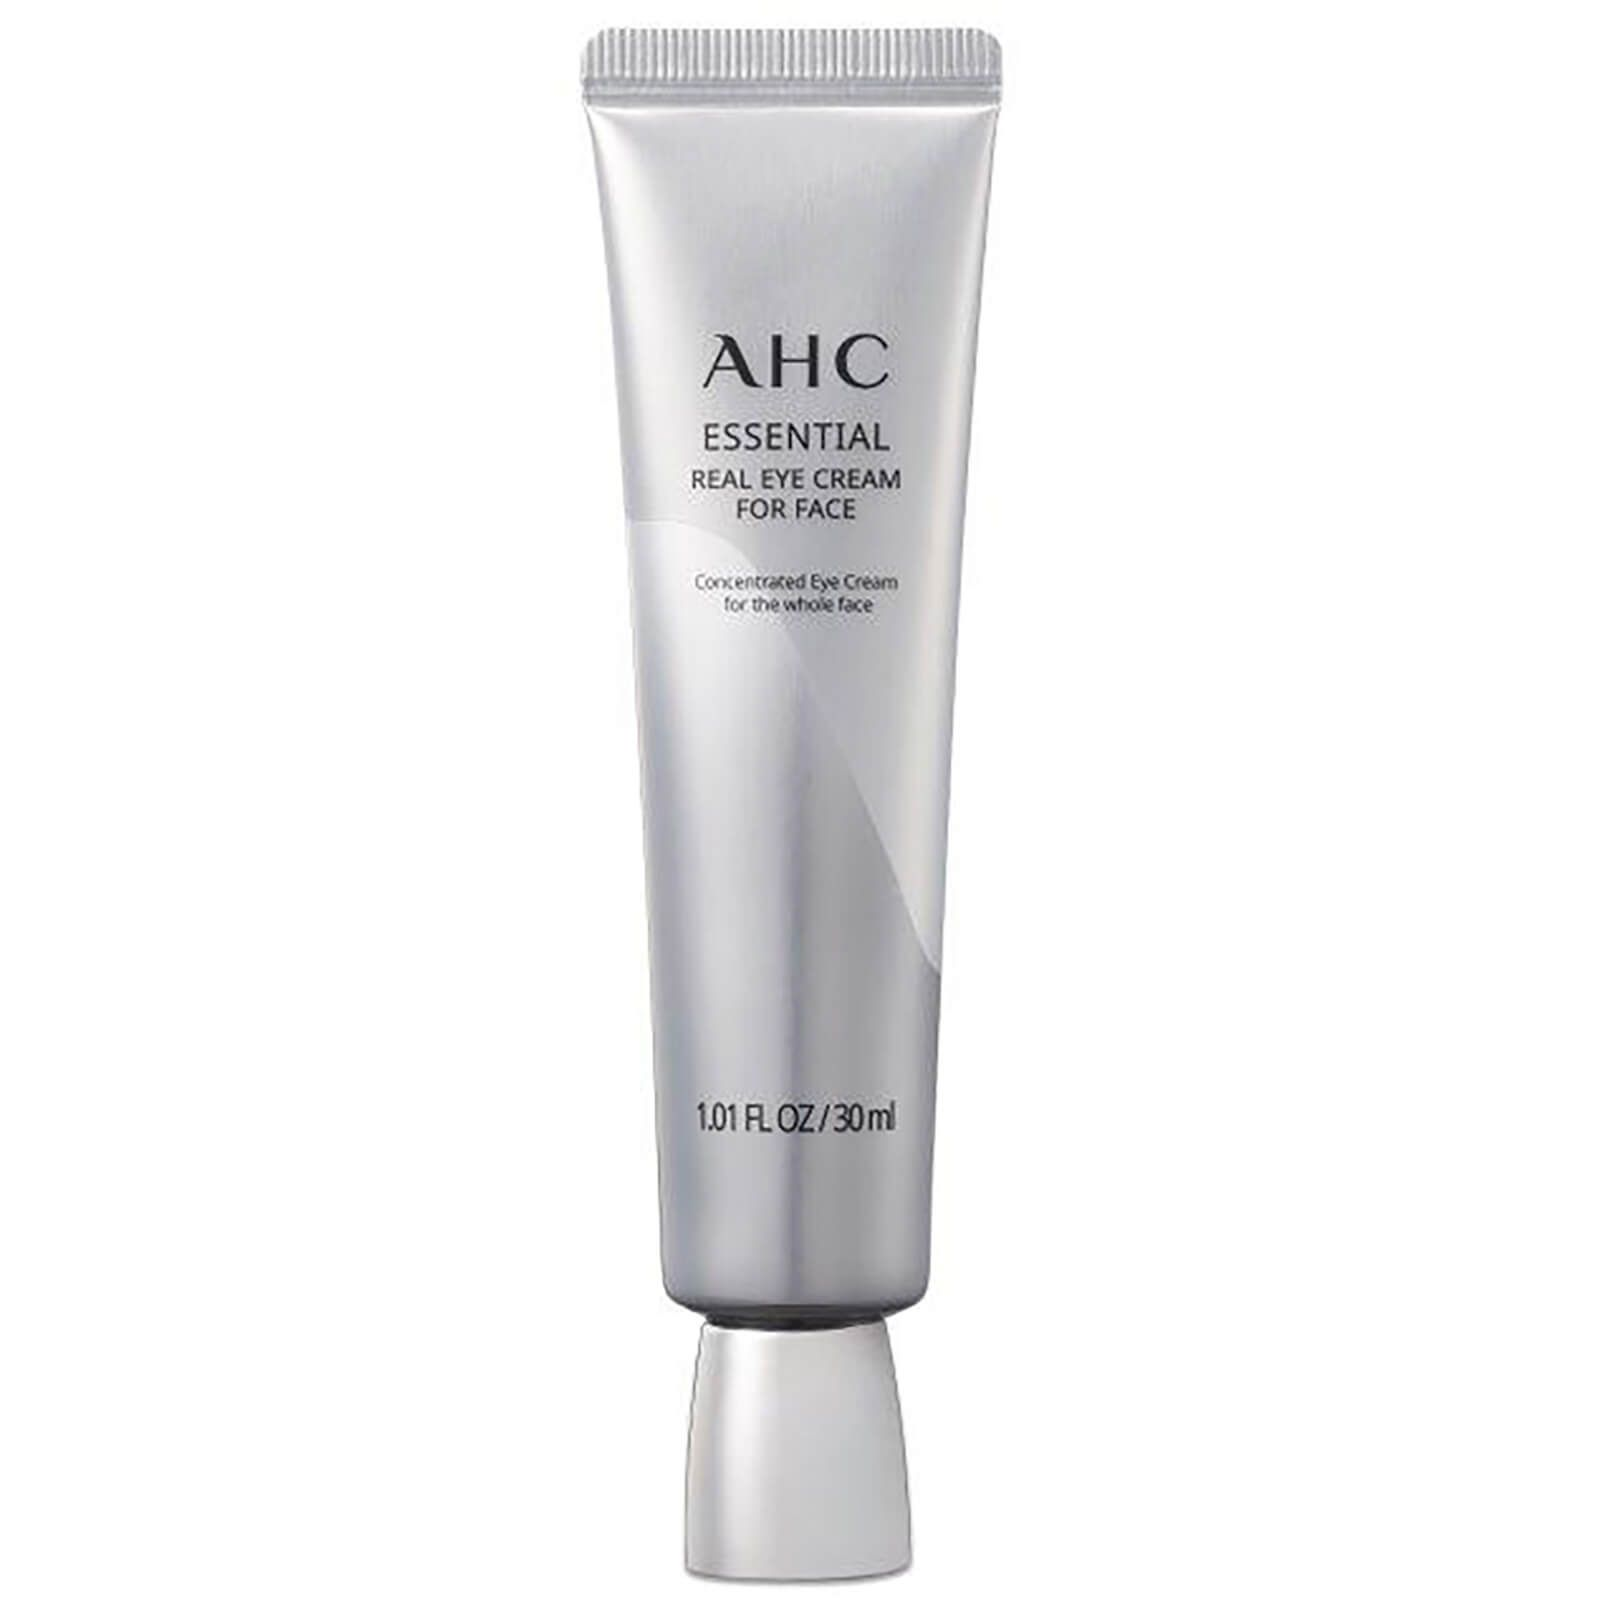 My Celebrity Life – AHC Hydrating Essential Real Eye Cream for Face